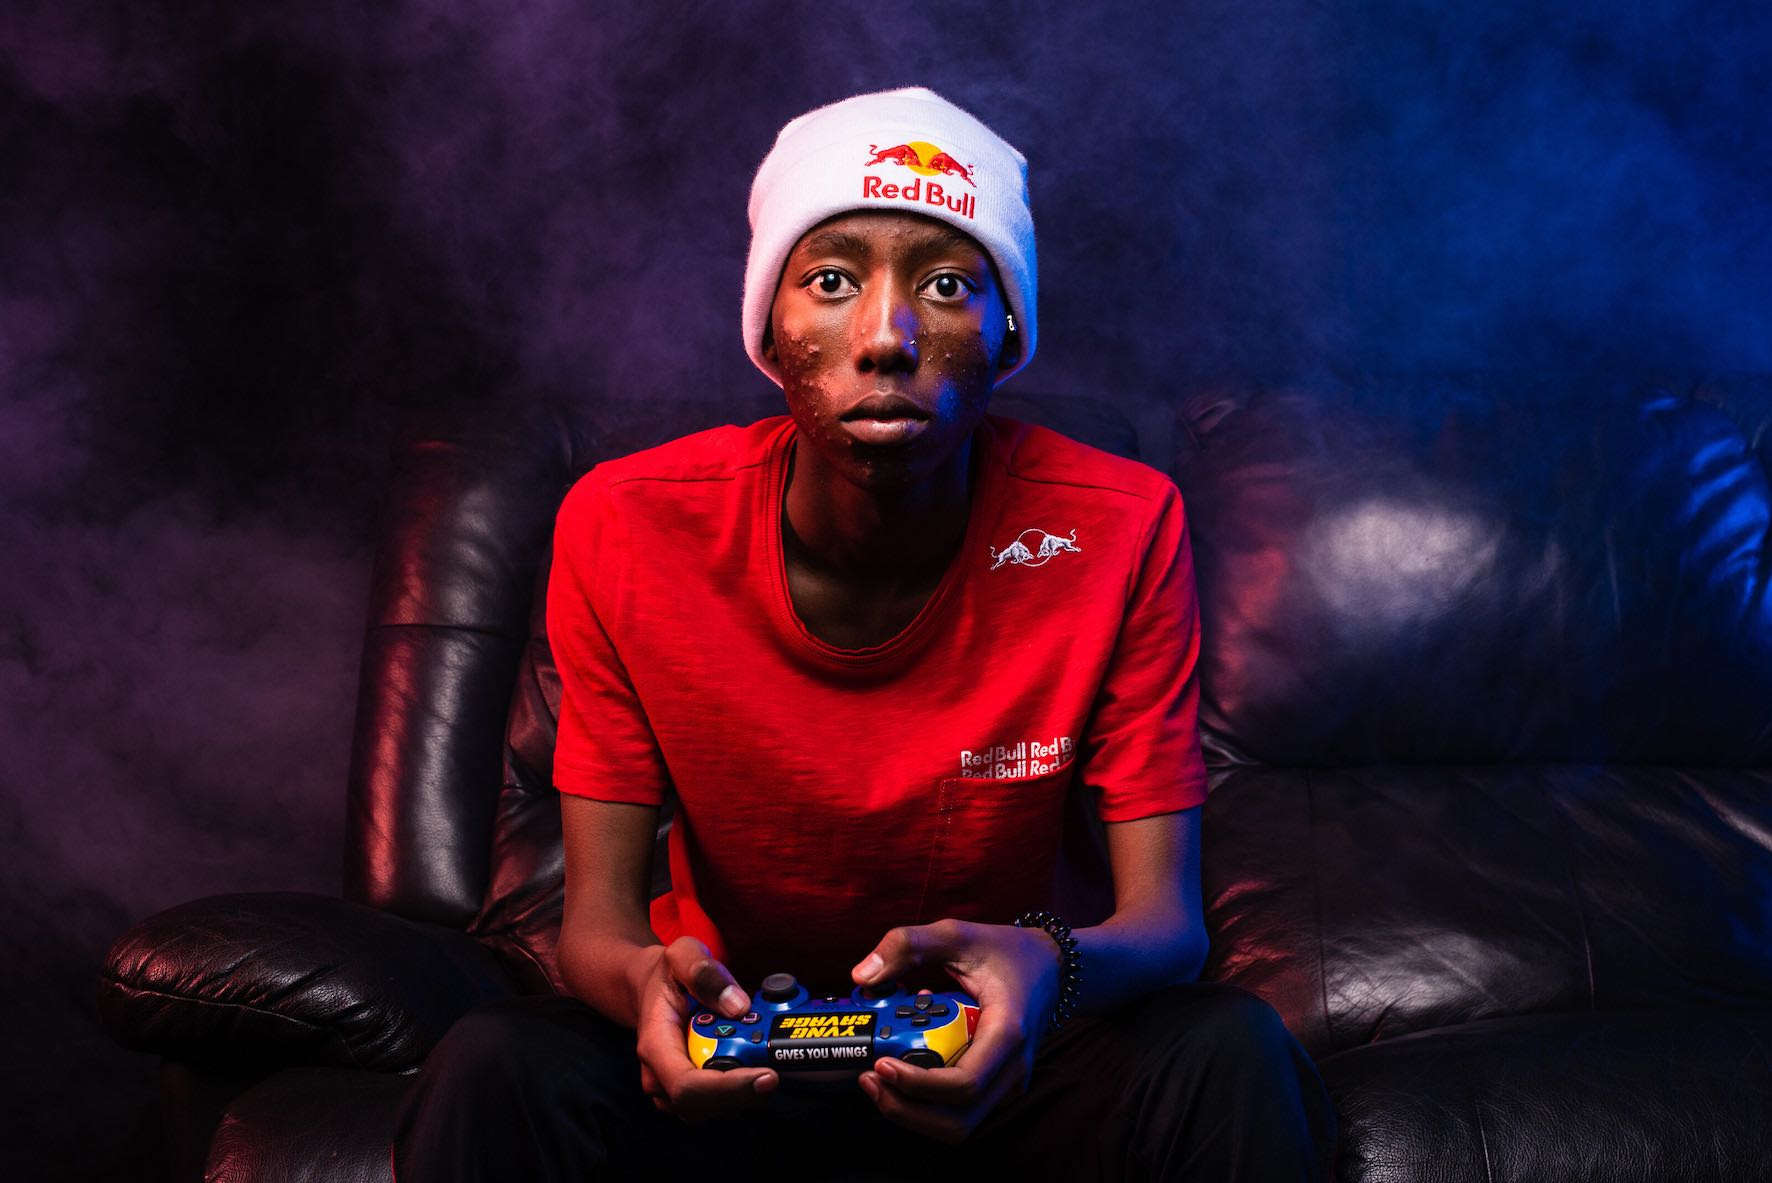 Introducing aka Yvng Savage as the first Red Bull Esports Athlete on the continent.